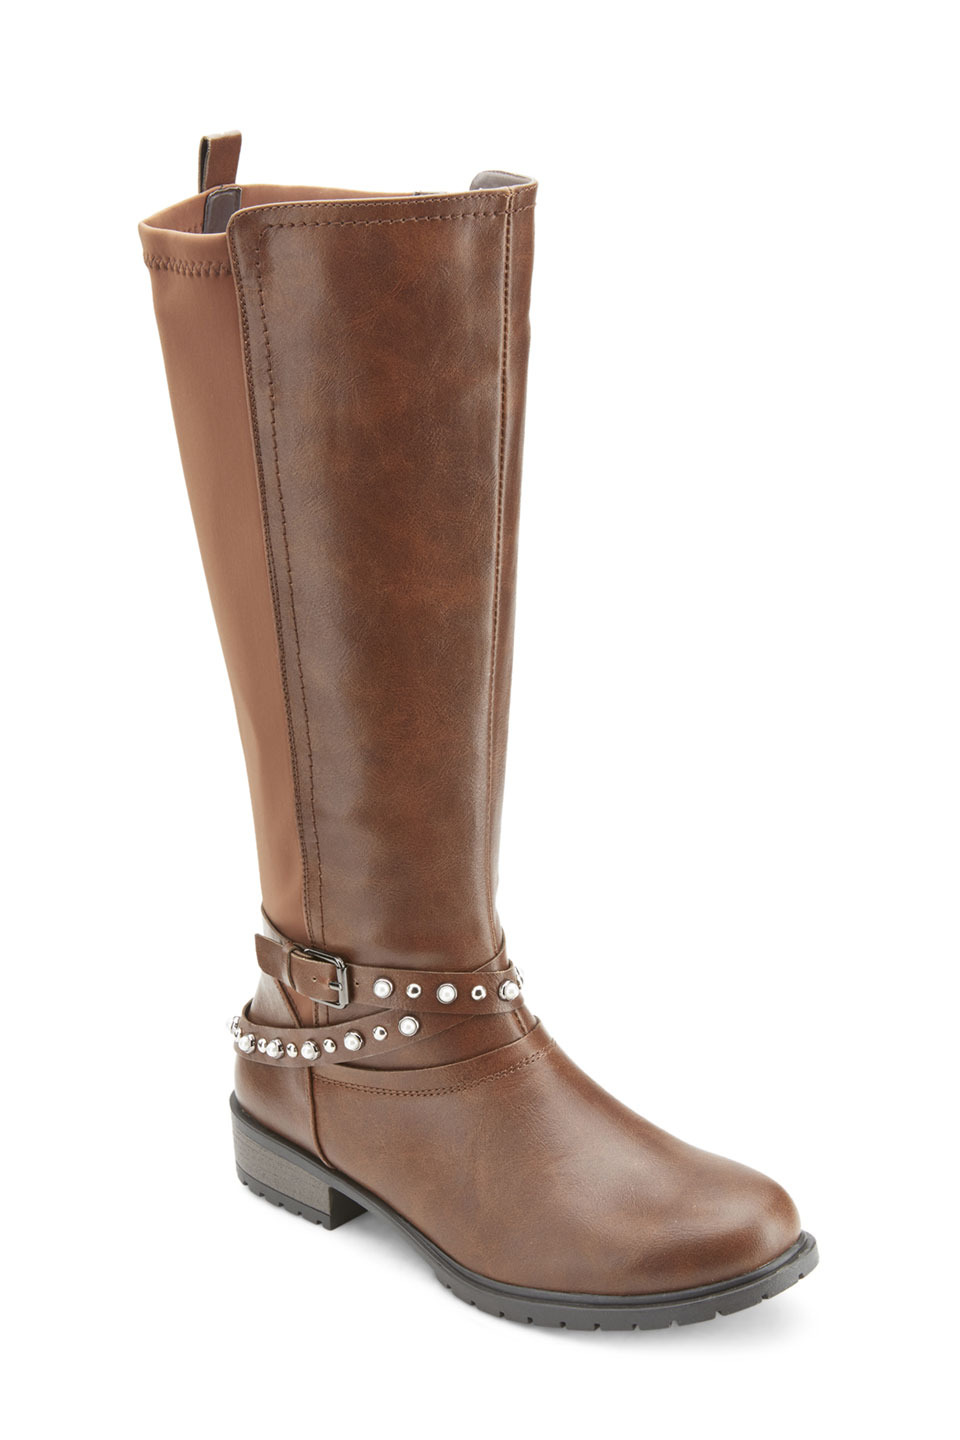 Coffman Back Stretch Pearl Studded Riding Boots in Cognac